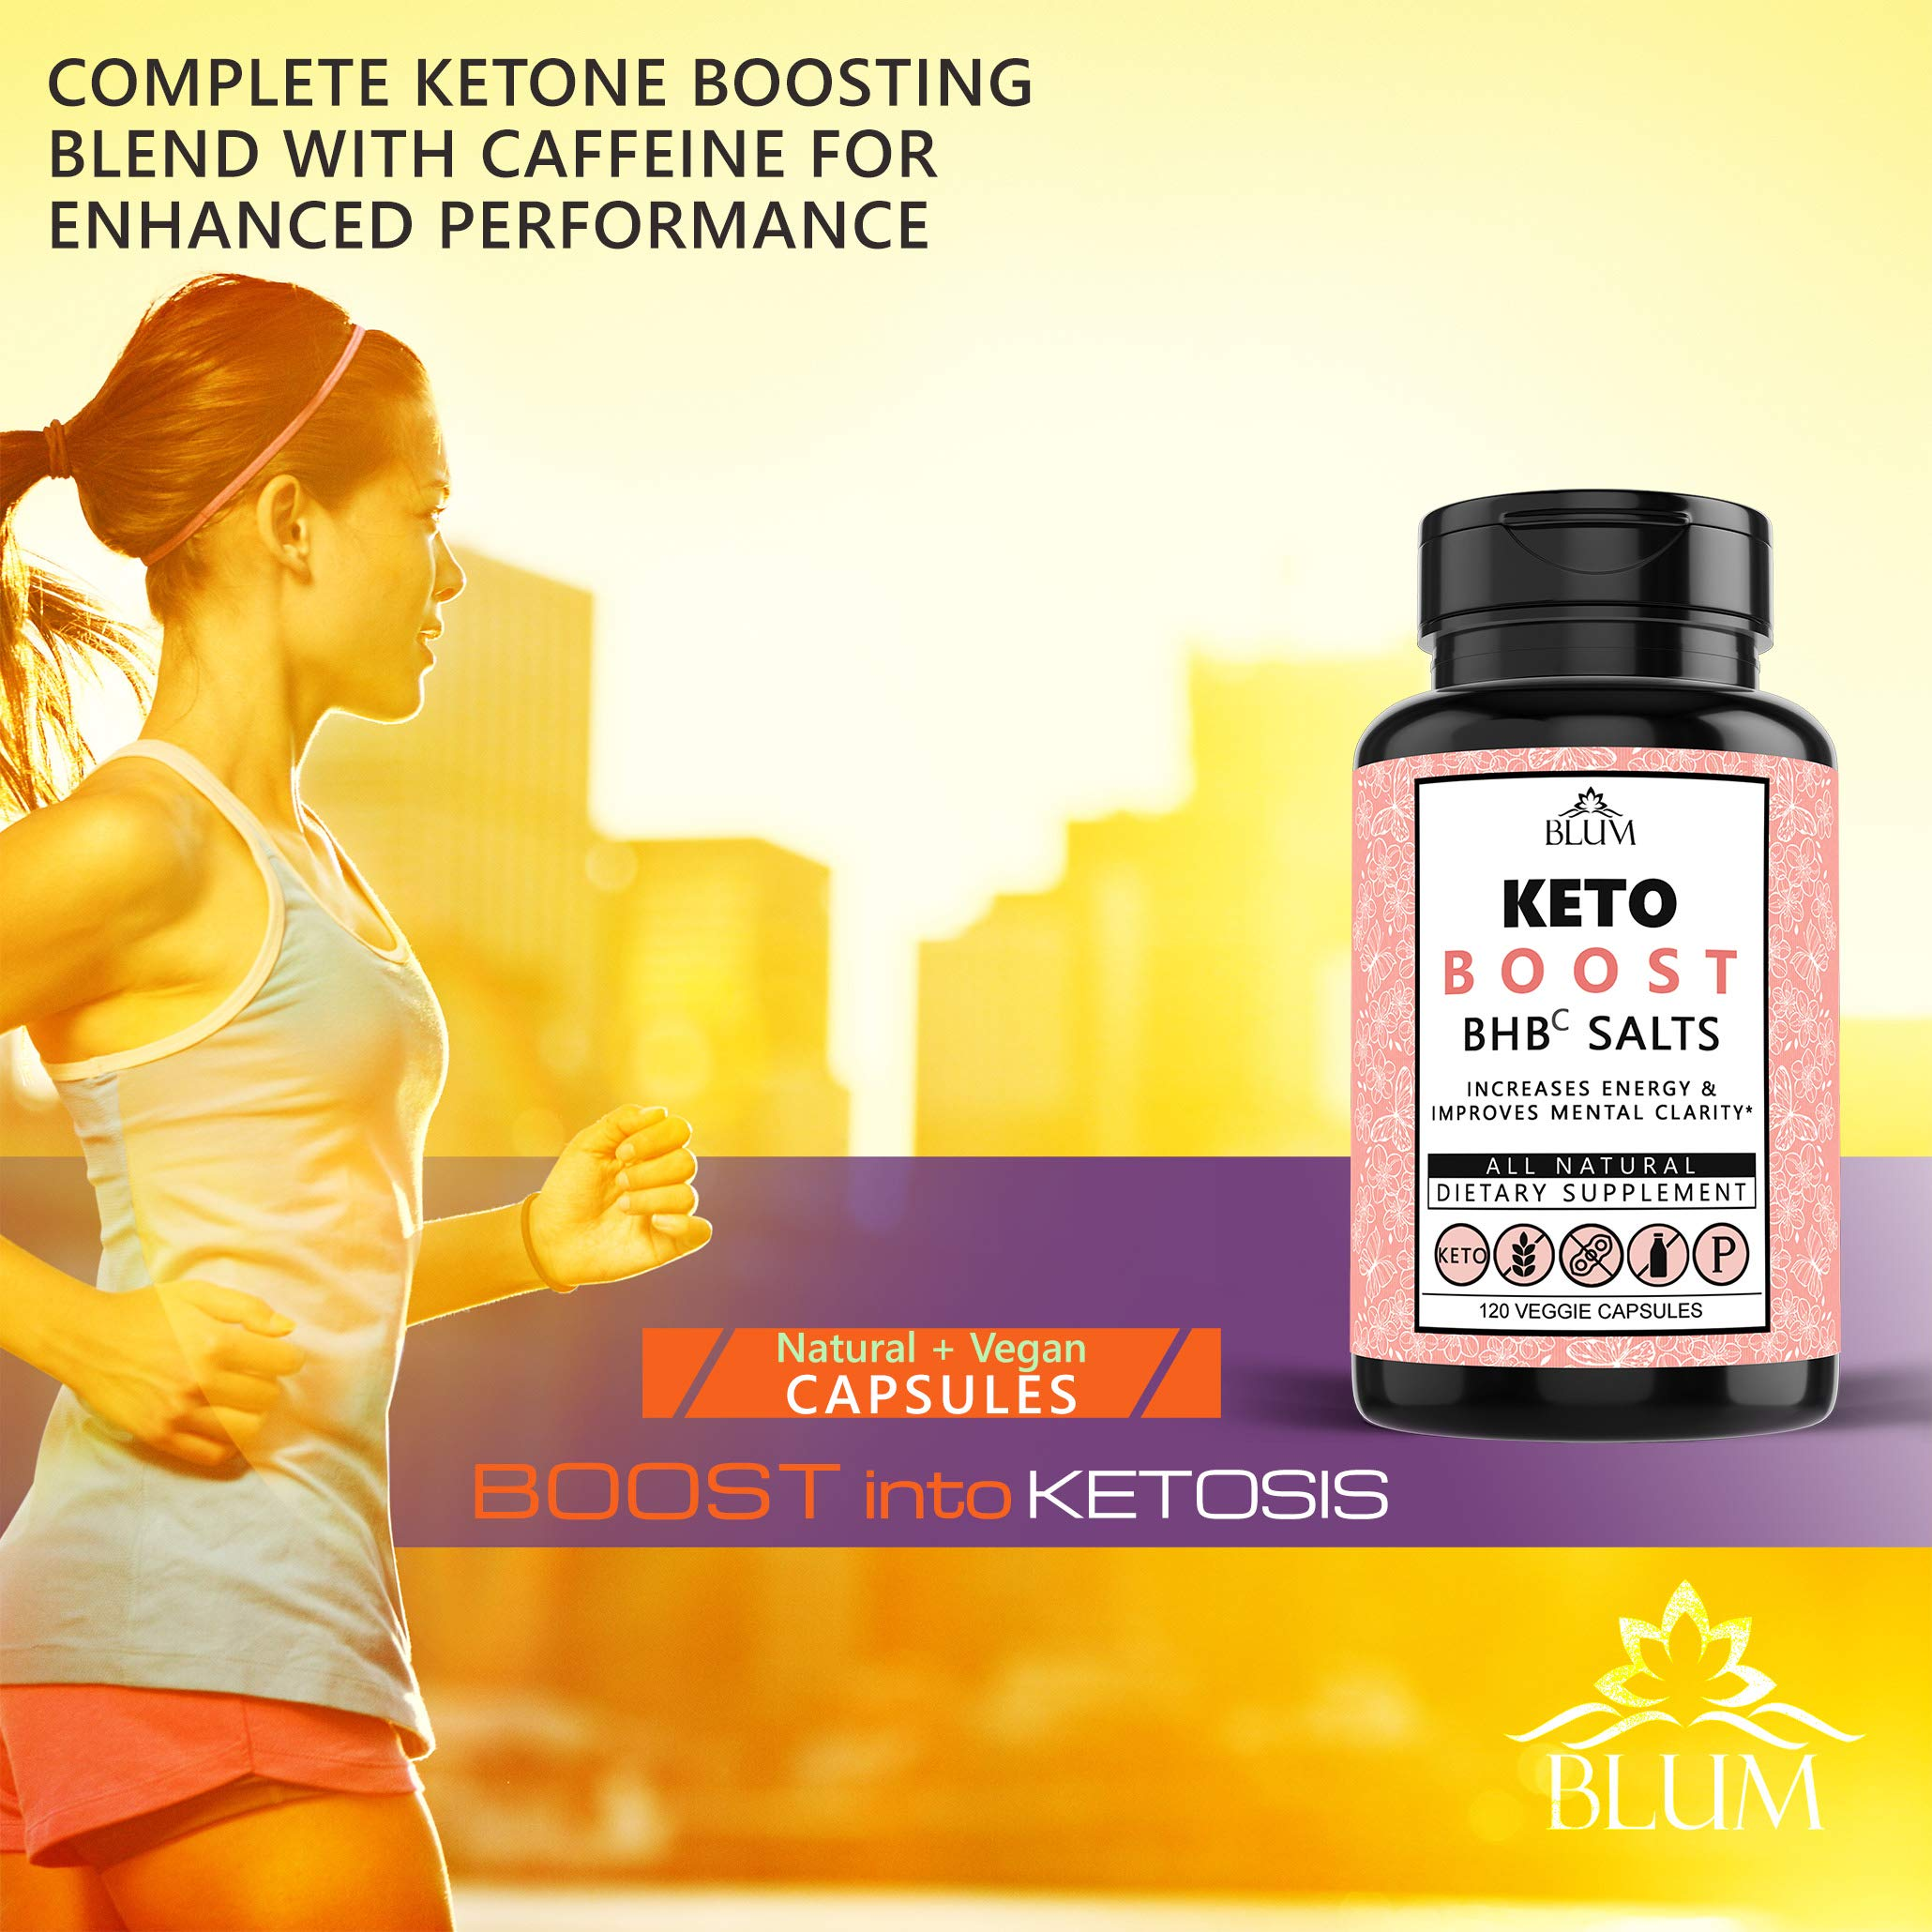 Keto Pills Weight Loss Supplements Keto Diet Pills for Ketosis | Advanced BHB Exogenous Ketones 800mg Capsules for Rapid Fat Burn, Suppress Appetite, Increase Metabolism, Energy and Mental Focus 120ct by Ovillow (Image #5)